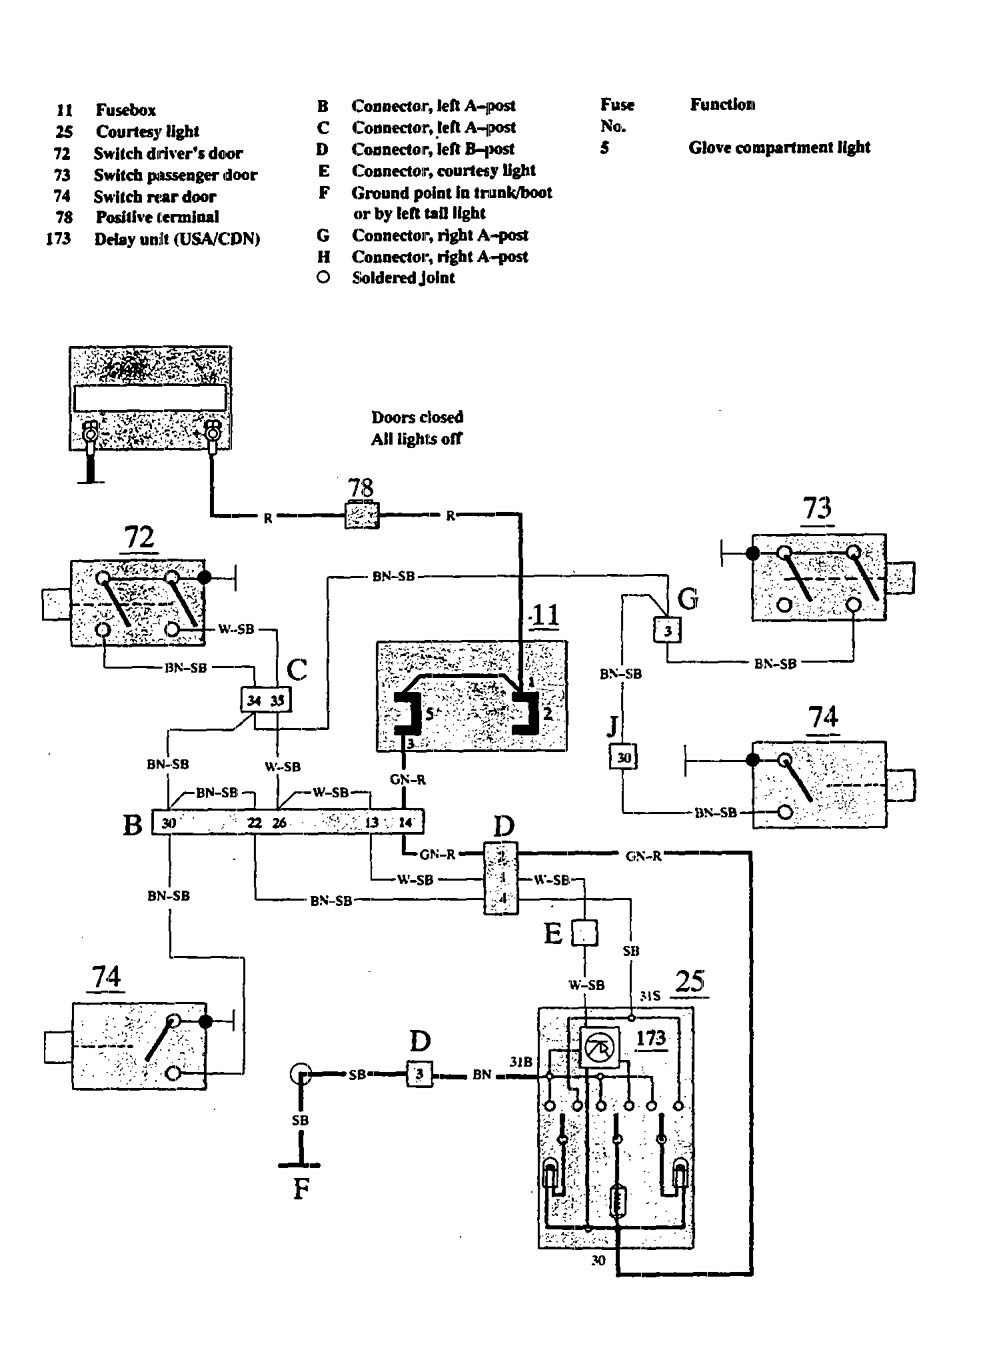 1991 Jeep Cherokee Engine Diagram Great Design Of Wiring Grand Wagoneer Comanche 1998 Manufacturer Xj